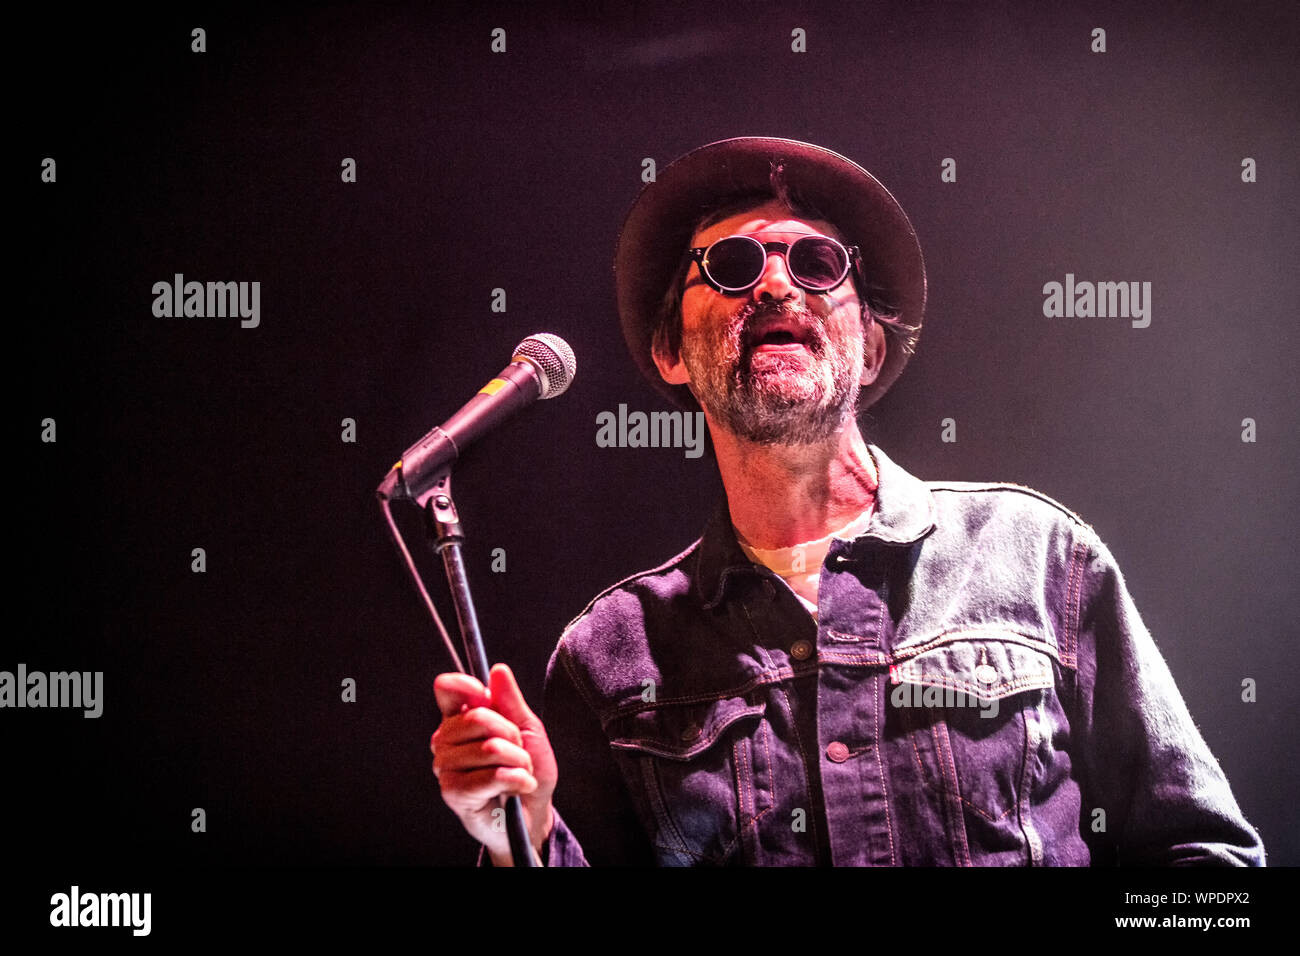 Oslo Norway 28th August 2019 The American Rock Band Eels Performs A Live Concert At Rockefeller In Oslo Here Singer Songwriter And Musician Mark Oliver Everett Is Seen Live On Stage Photo